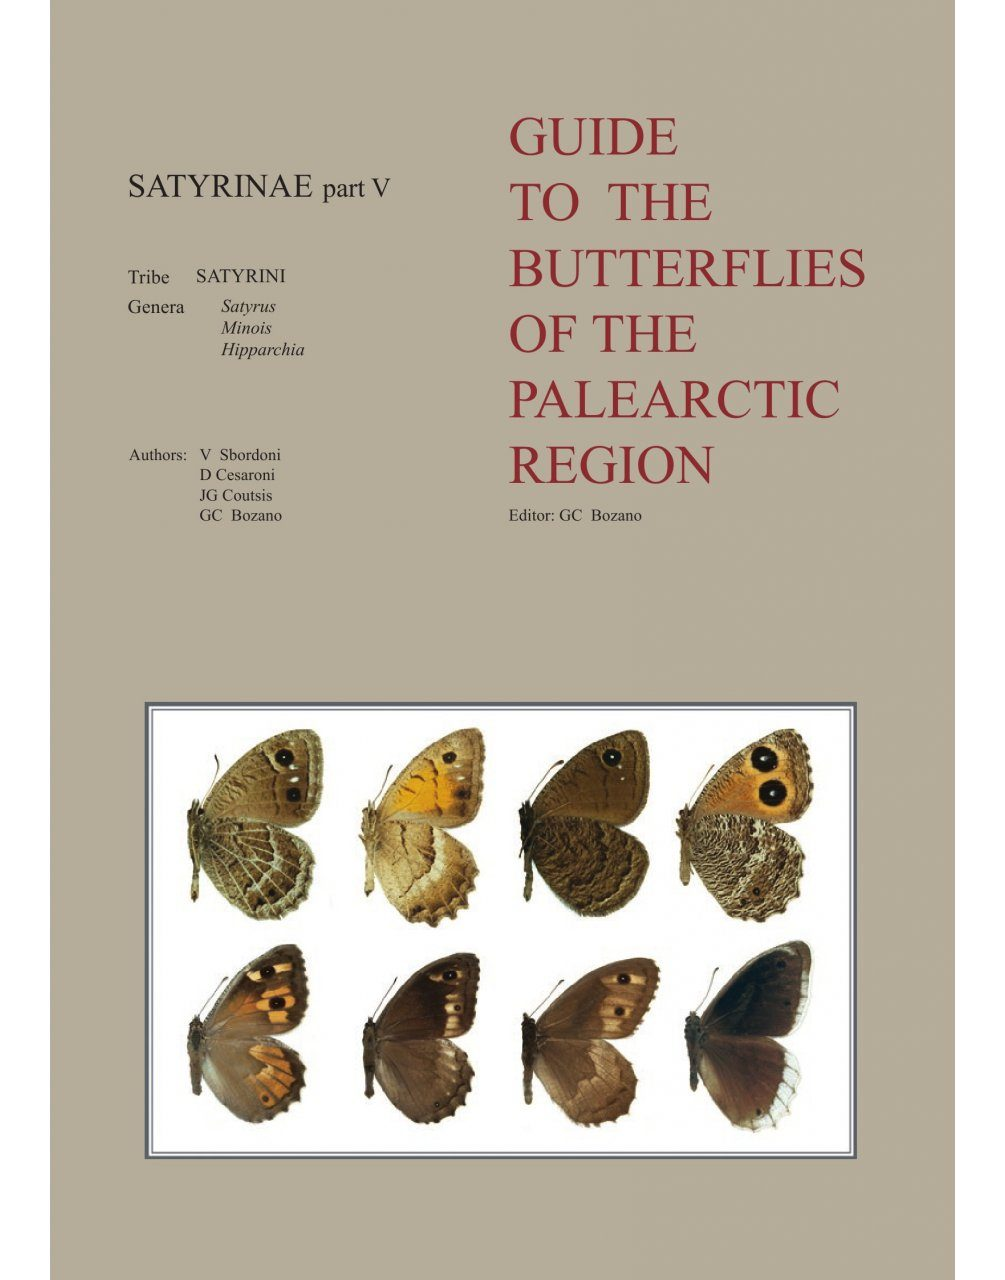 Satyrinae Part 5 (Guide to the Butterflies of the Palearctic Region)